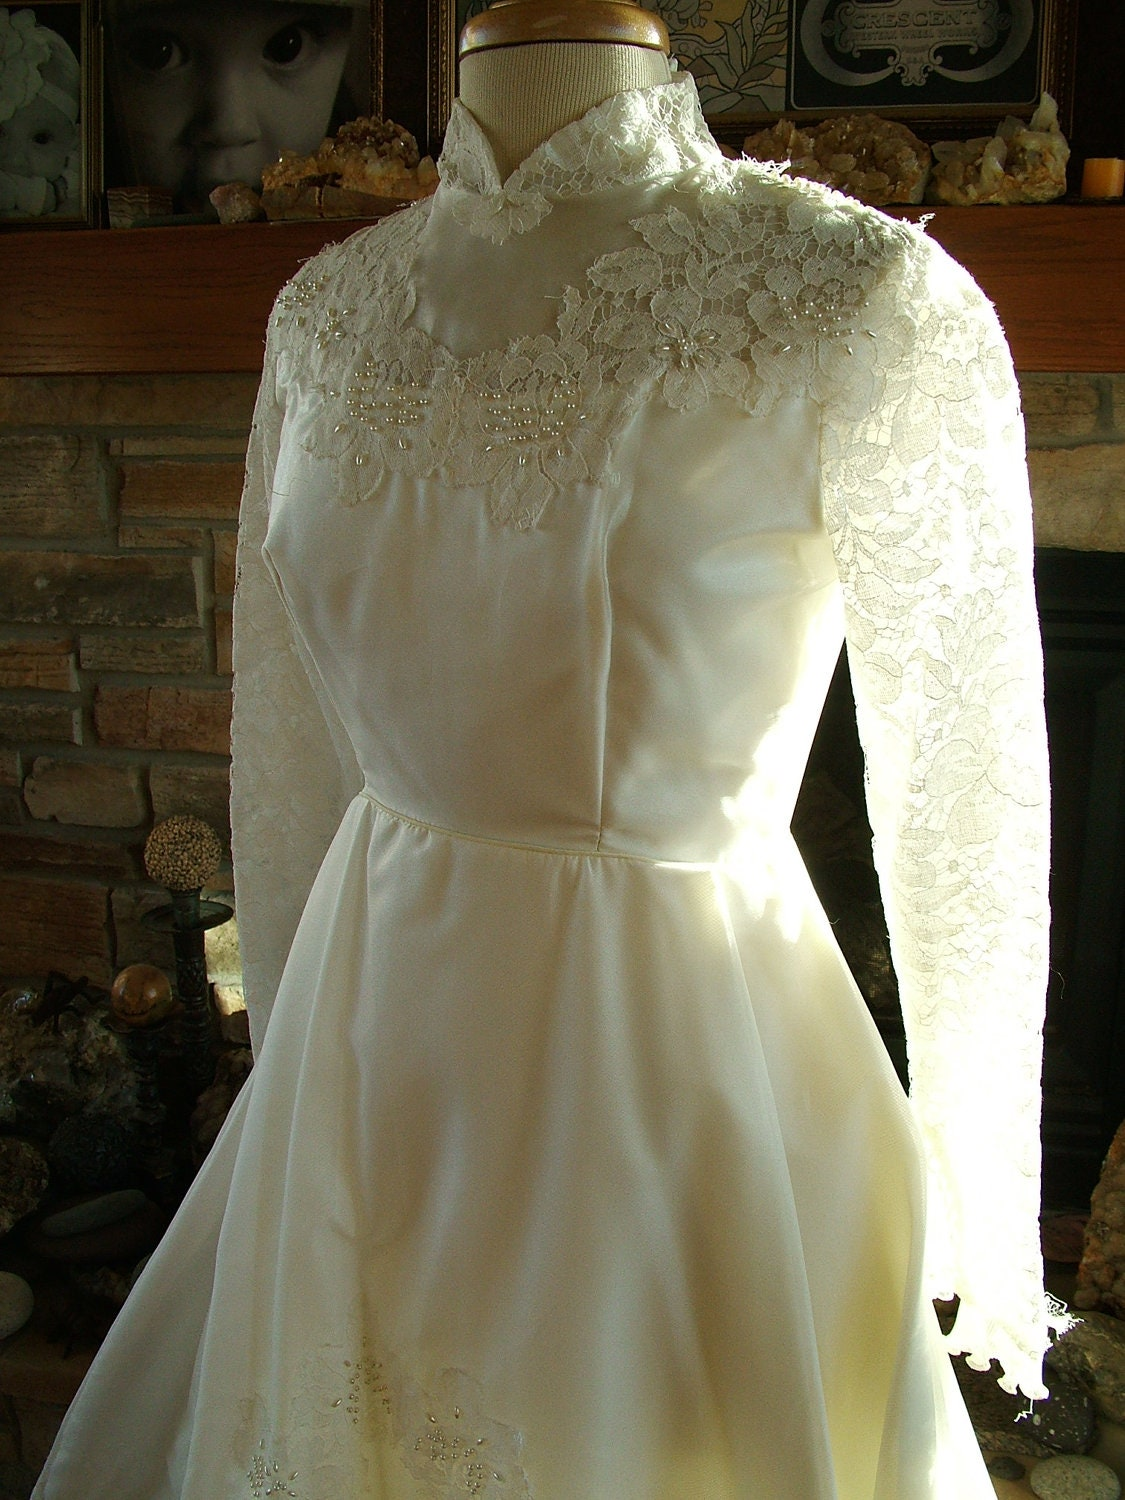 Vintage wedding dress 1970s chantilly lace bridal gown long for 1970s vintage wedding dresses